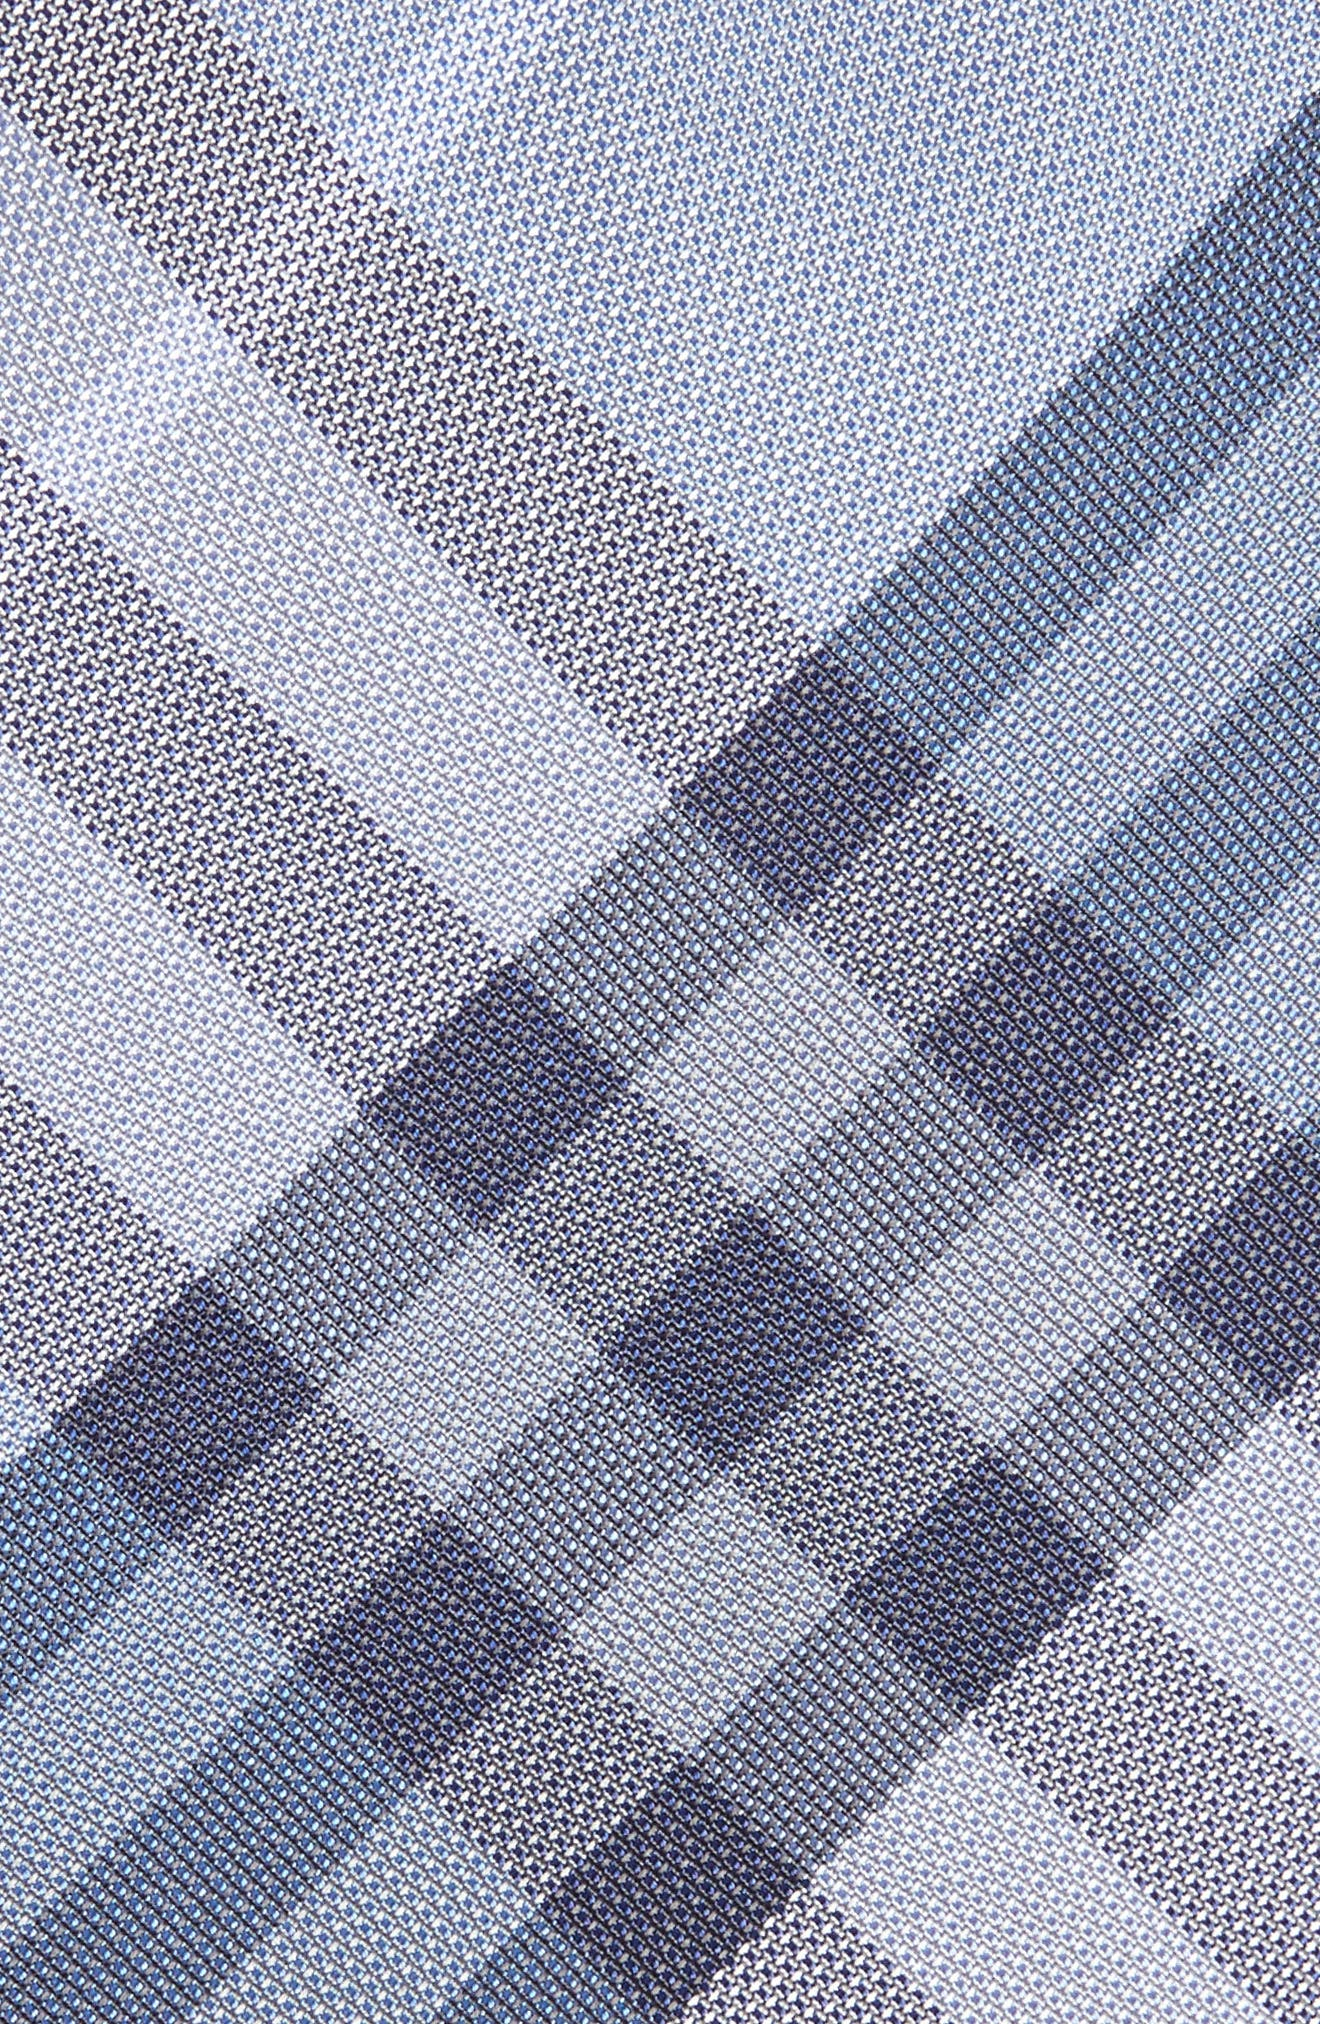 Alternate Image 2  - Burberry Clinton Check Silk Tie